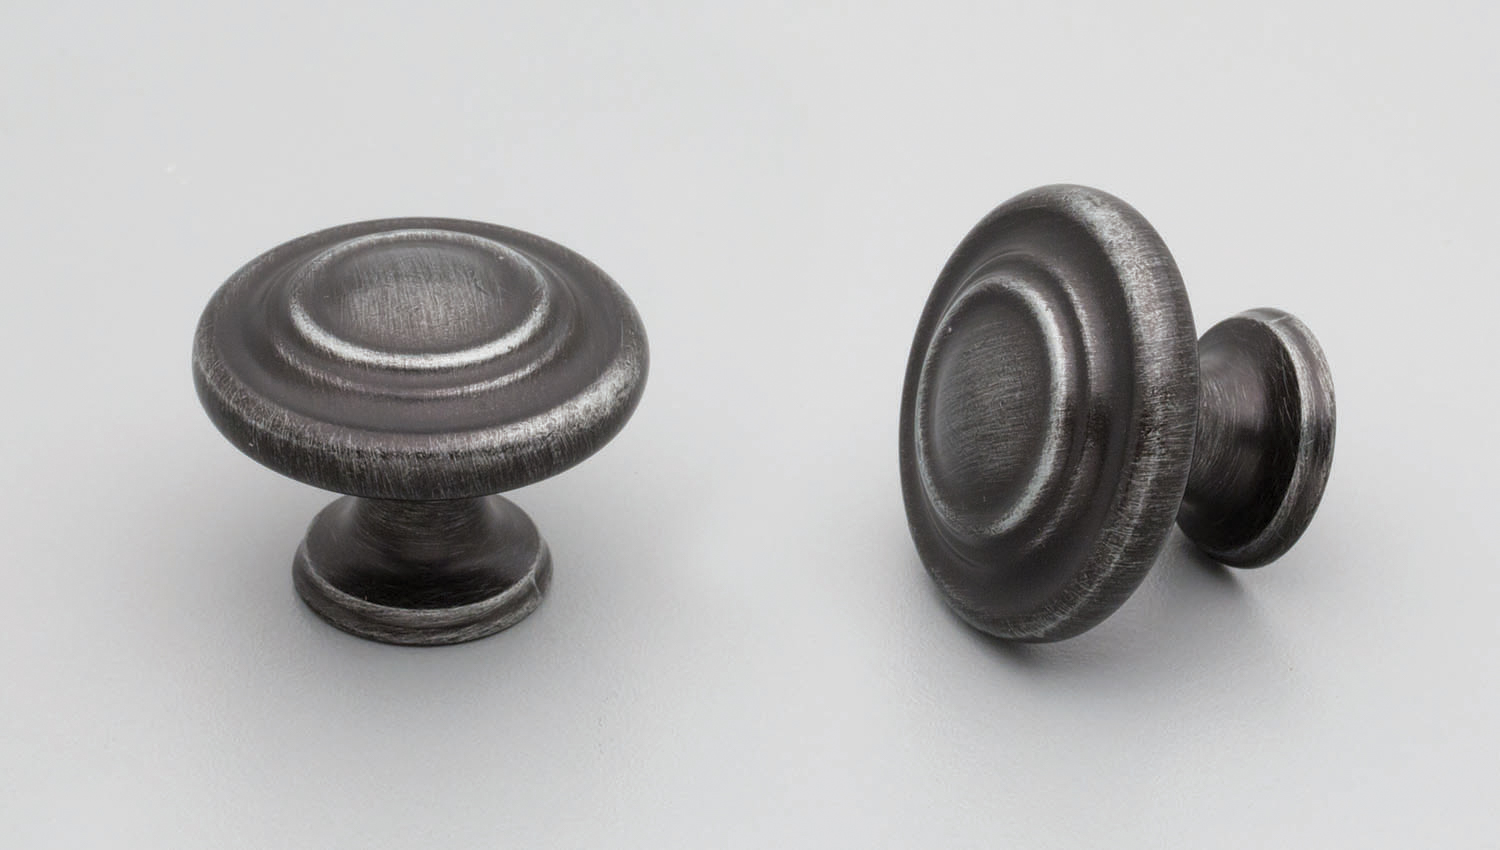 HT662 BINGLEY Hampton / Shaker round knob button centre : Kethy